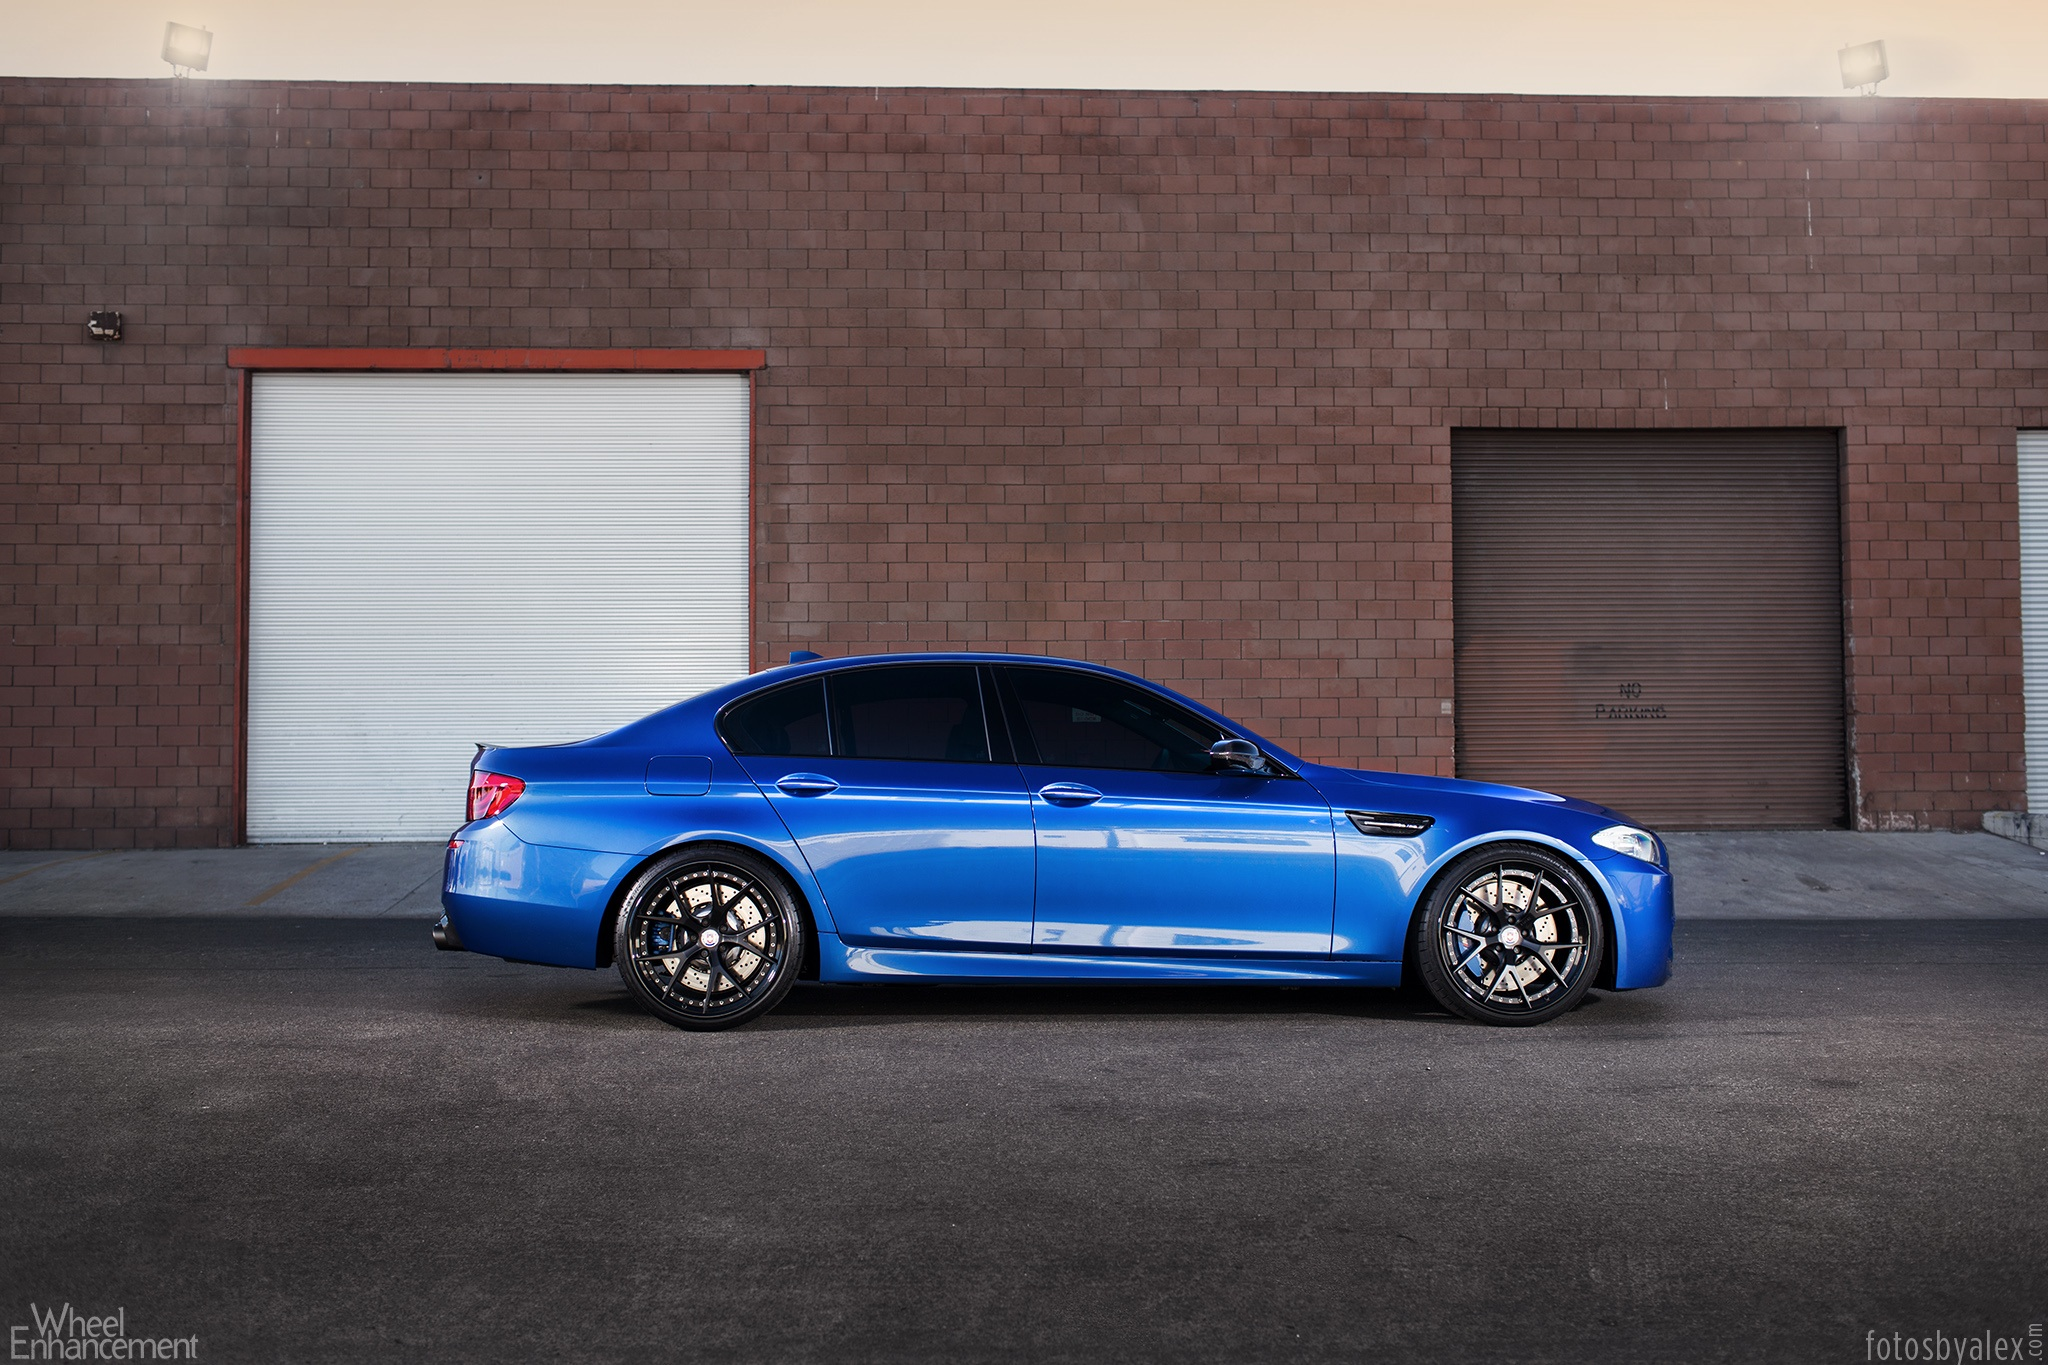 Nasa Iphone 5 Wallpaper The Blue Marble Bmw F10 M5 On Hre S101 Wheels Autoevolution